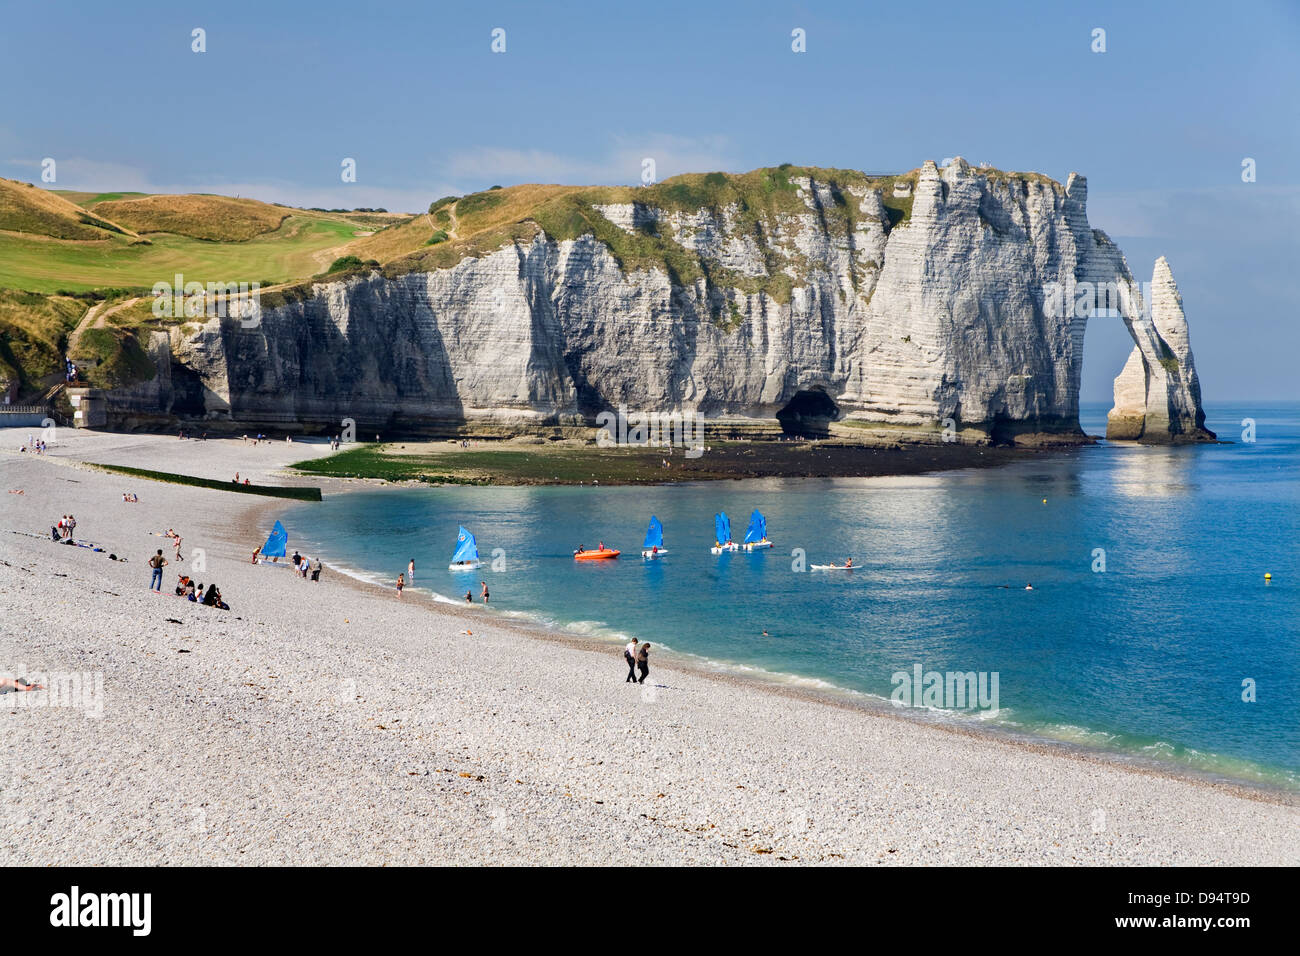 cliffs natural arch and stone beach in etretat le havre stock photo royalty free image. Black Bedroom Furniture Sets. Home Design Ideas